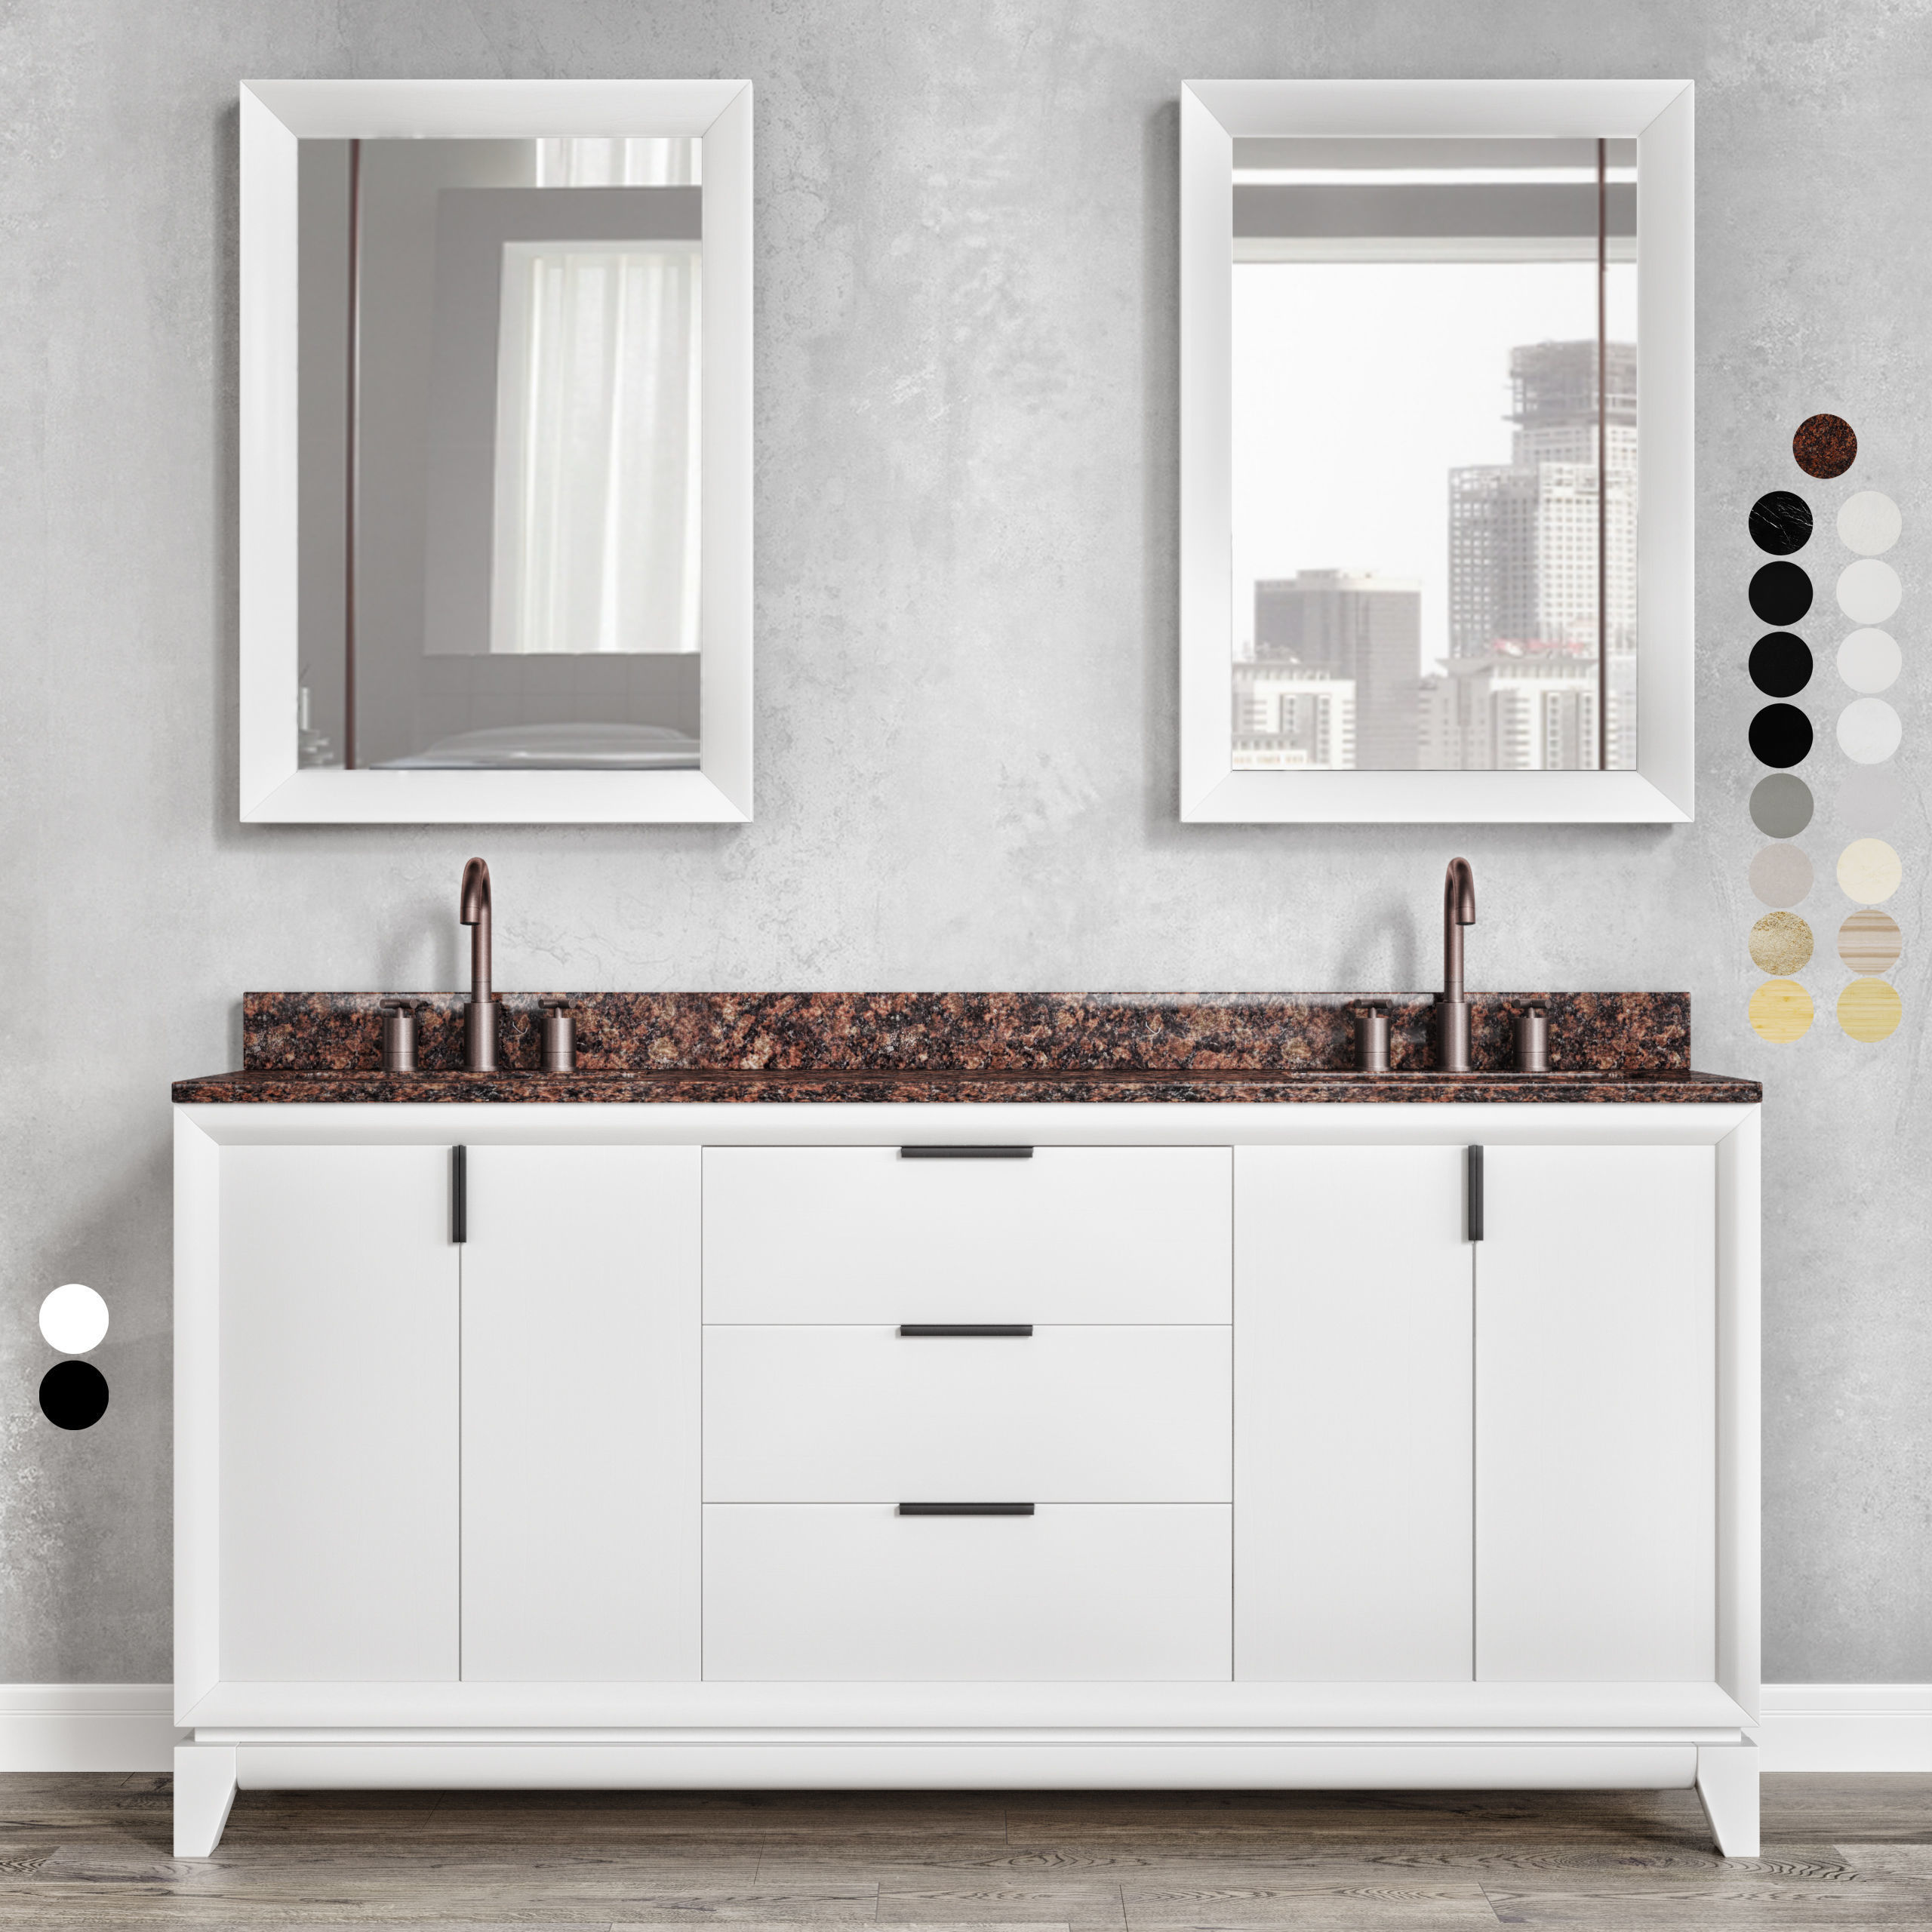 Furniture set Talyn 72 Black and White by Signature Hardware